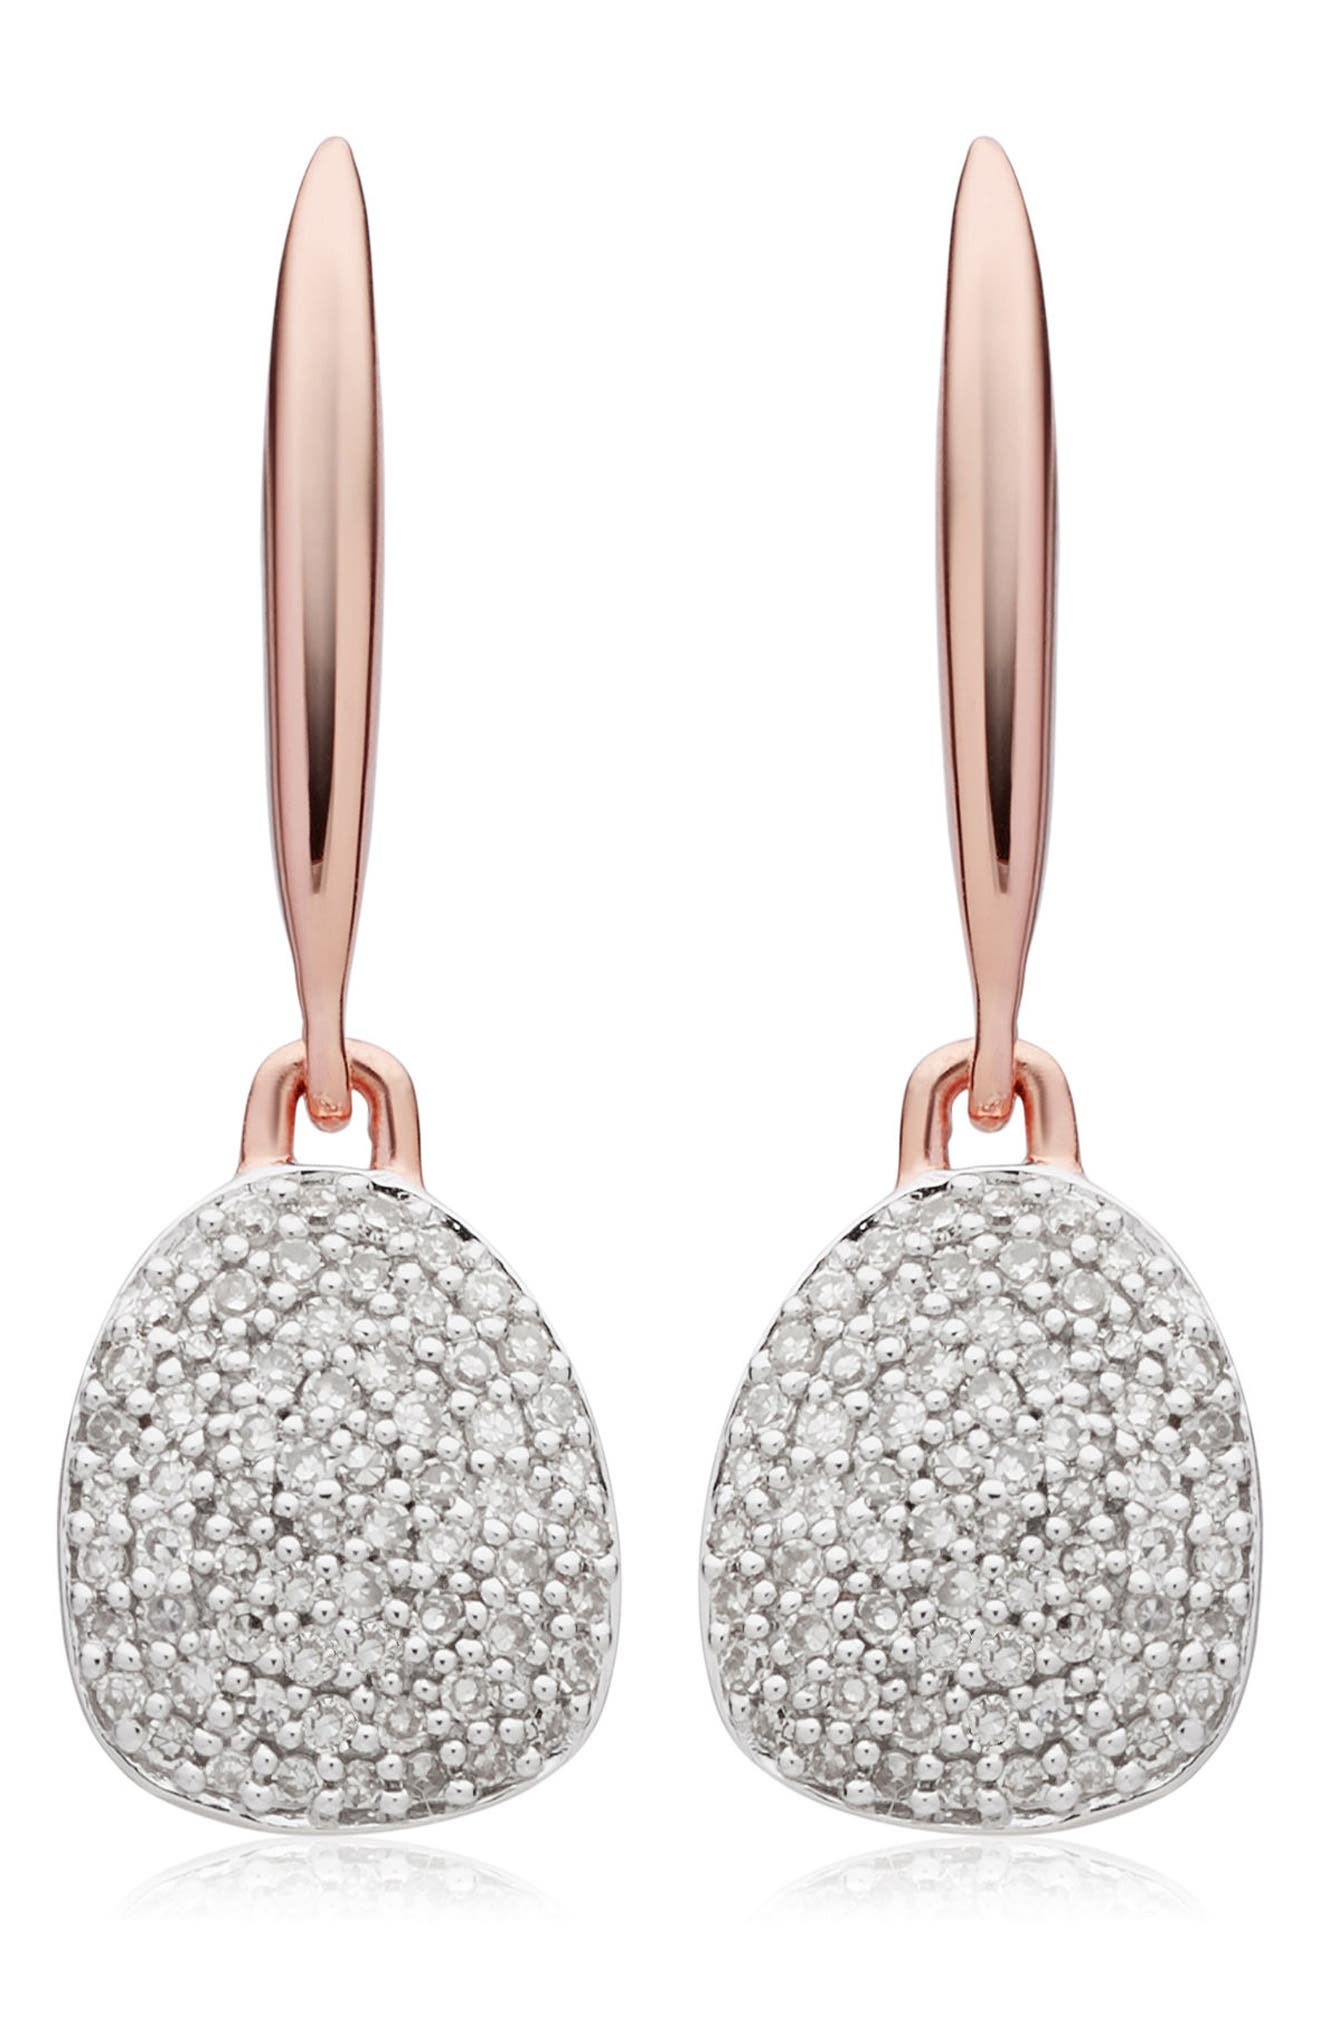 Nura Small Diamond Pebble Drop Earrings,                             Main thumbnail 1, color,                             ROSE GOLD